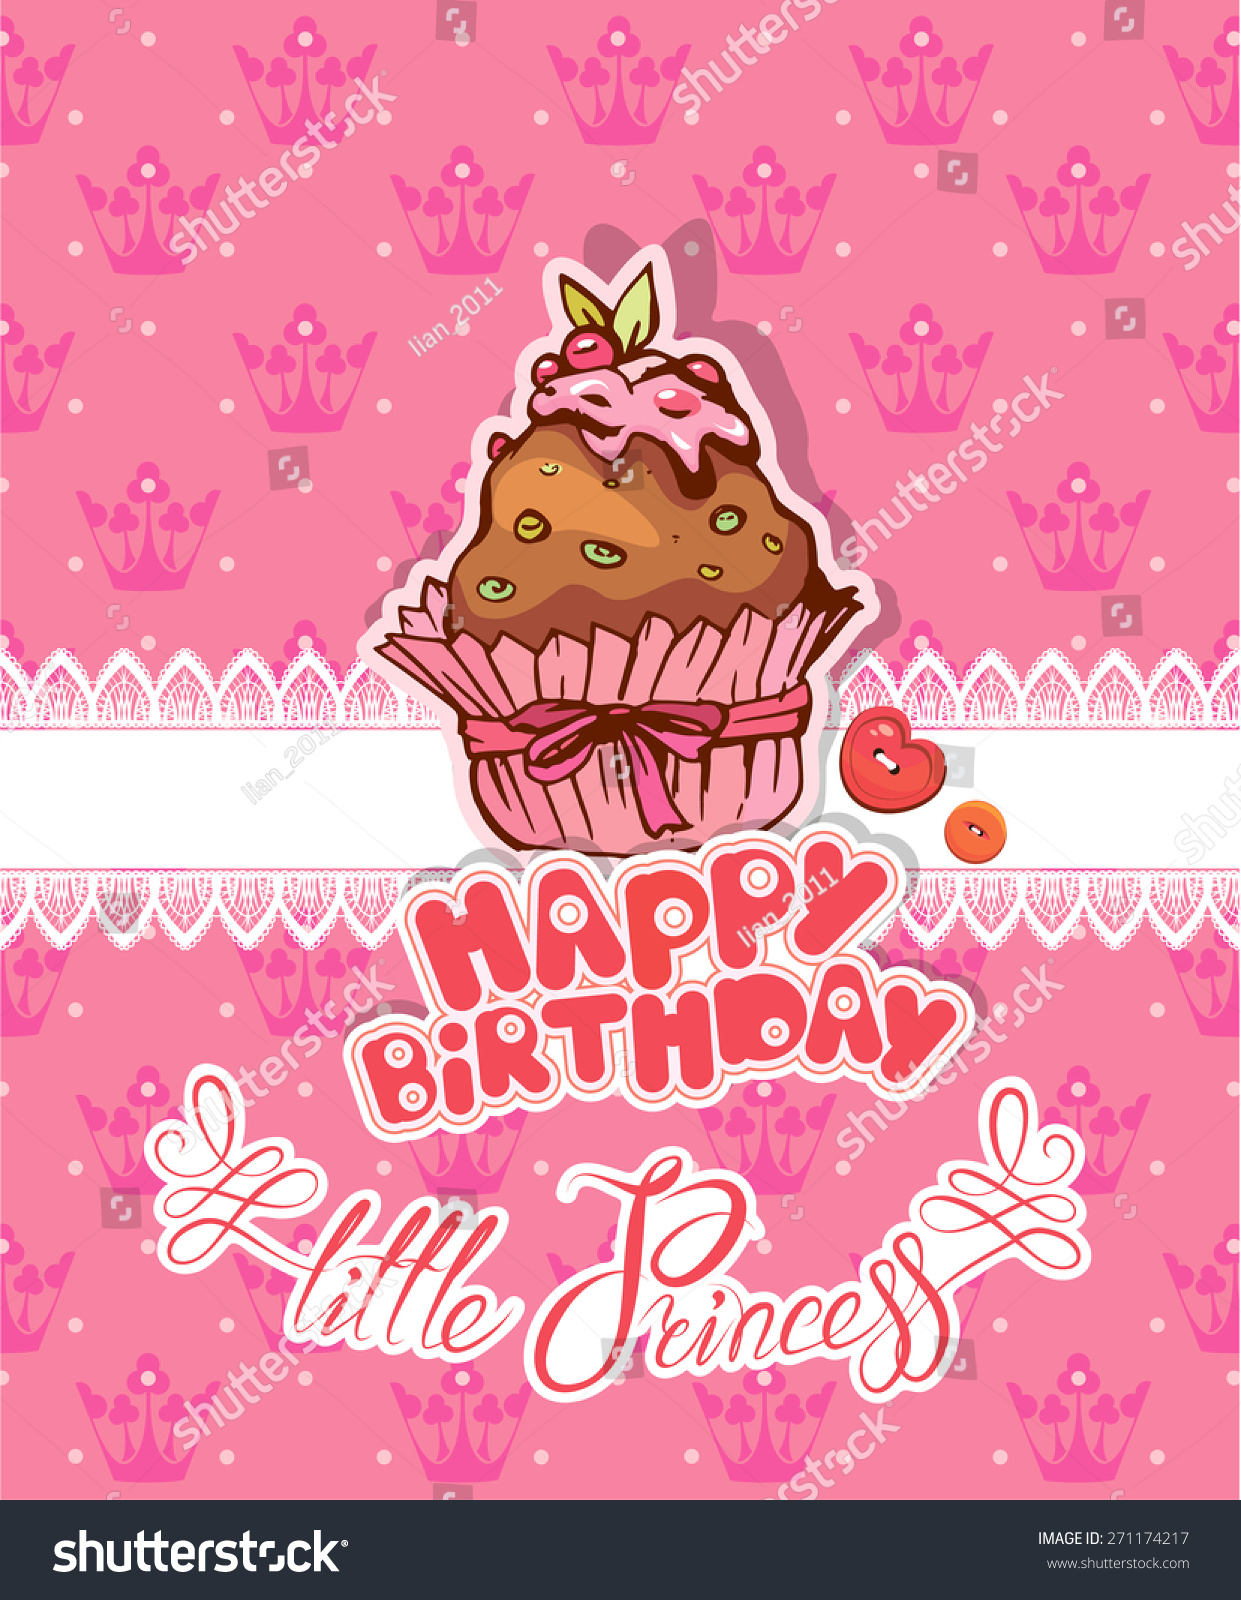 Girls happy birthday little princess holiday card for girl with